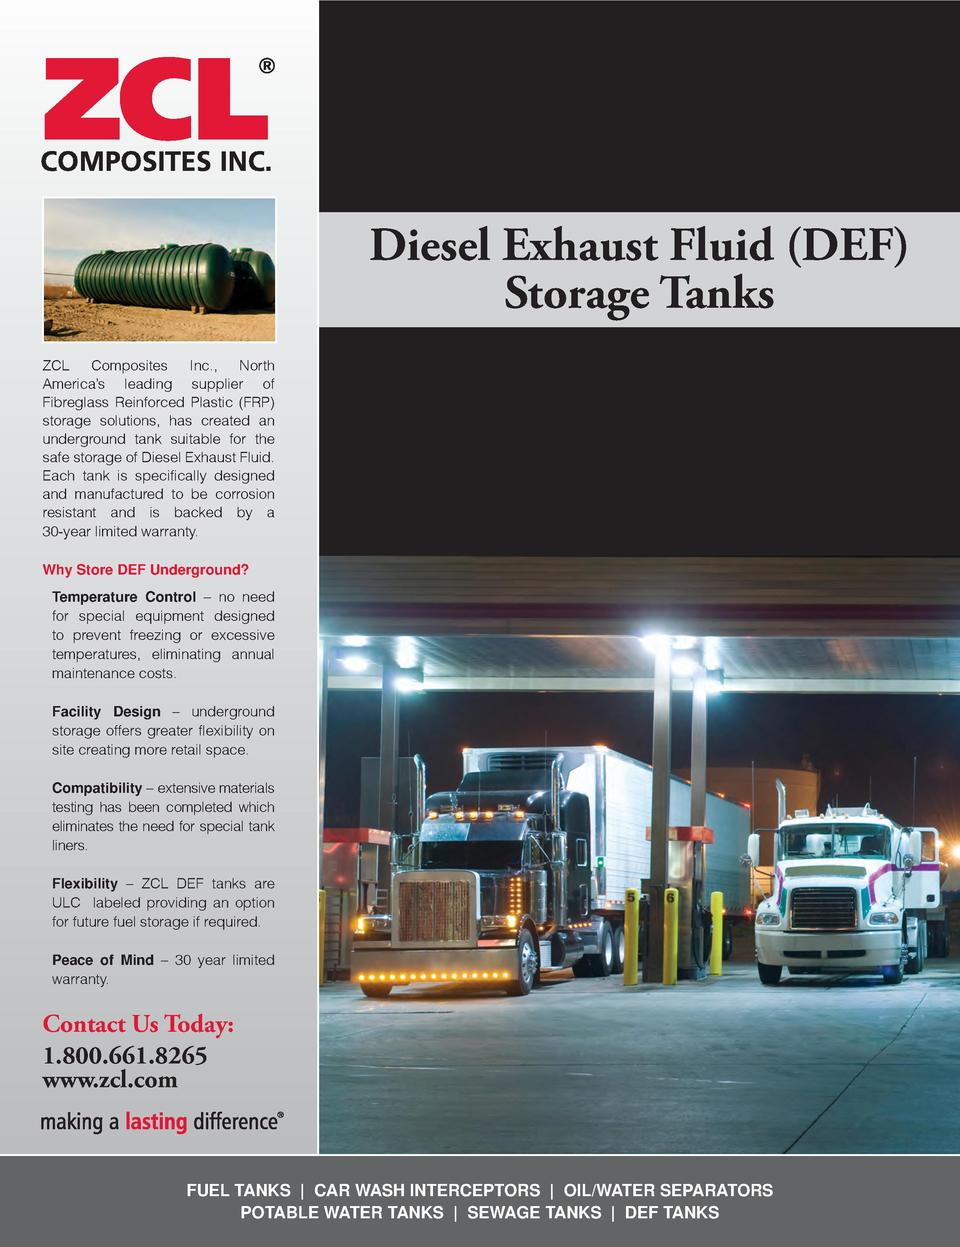 Diesel Exhaust Fluid  DEF  Storage Tanks ZCL Composites Inc., North America   s leading supplier of Fibreglass Reinforced ...